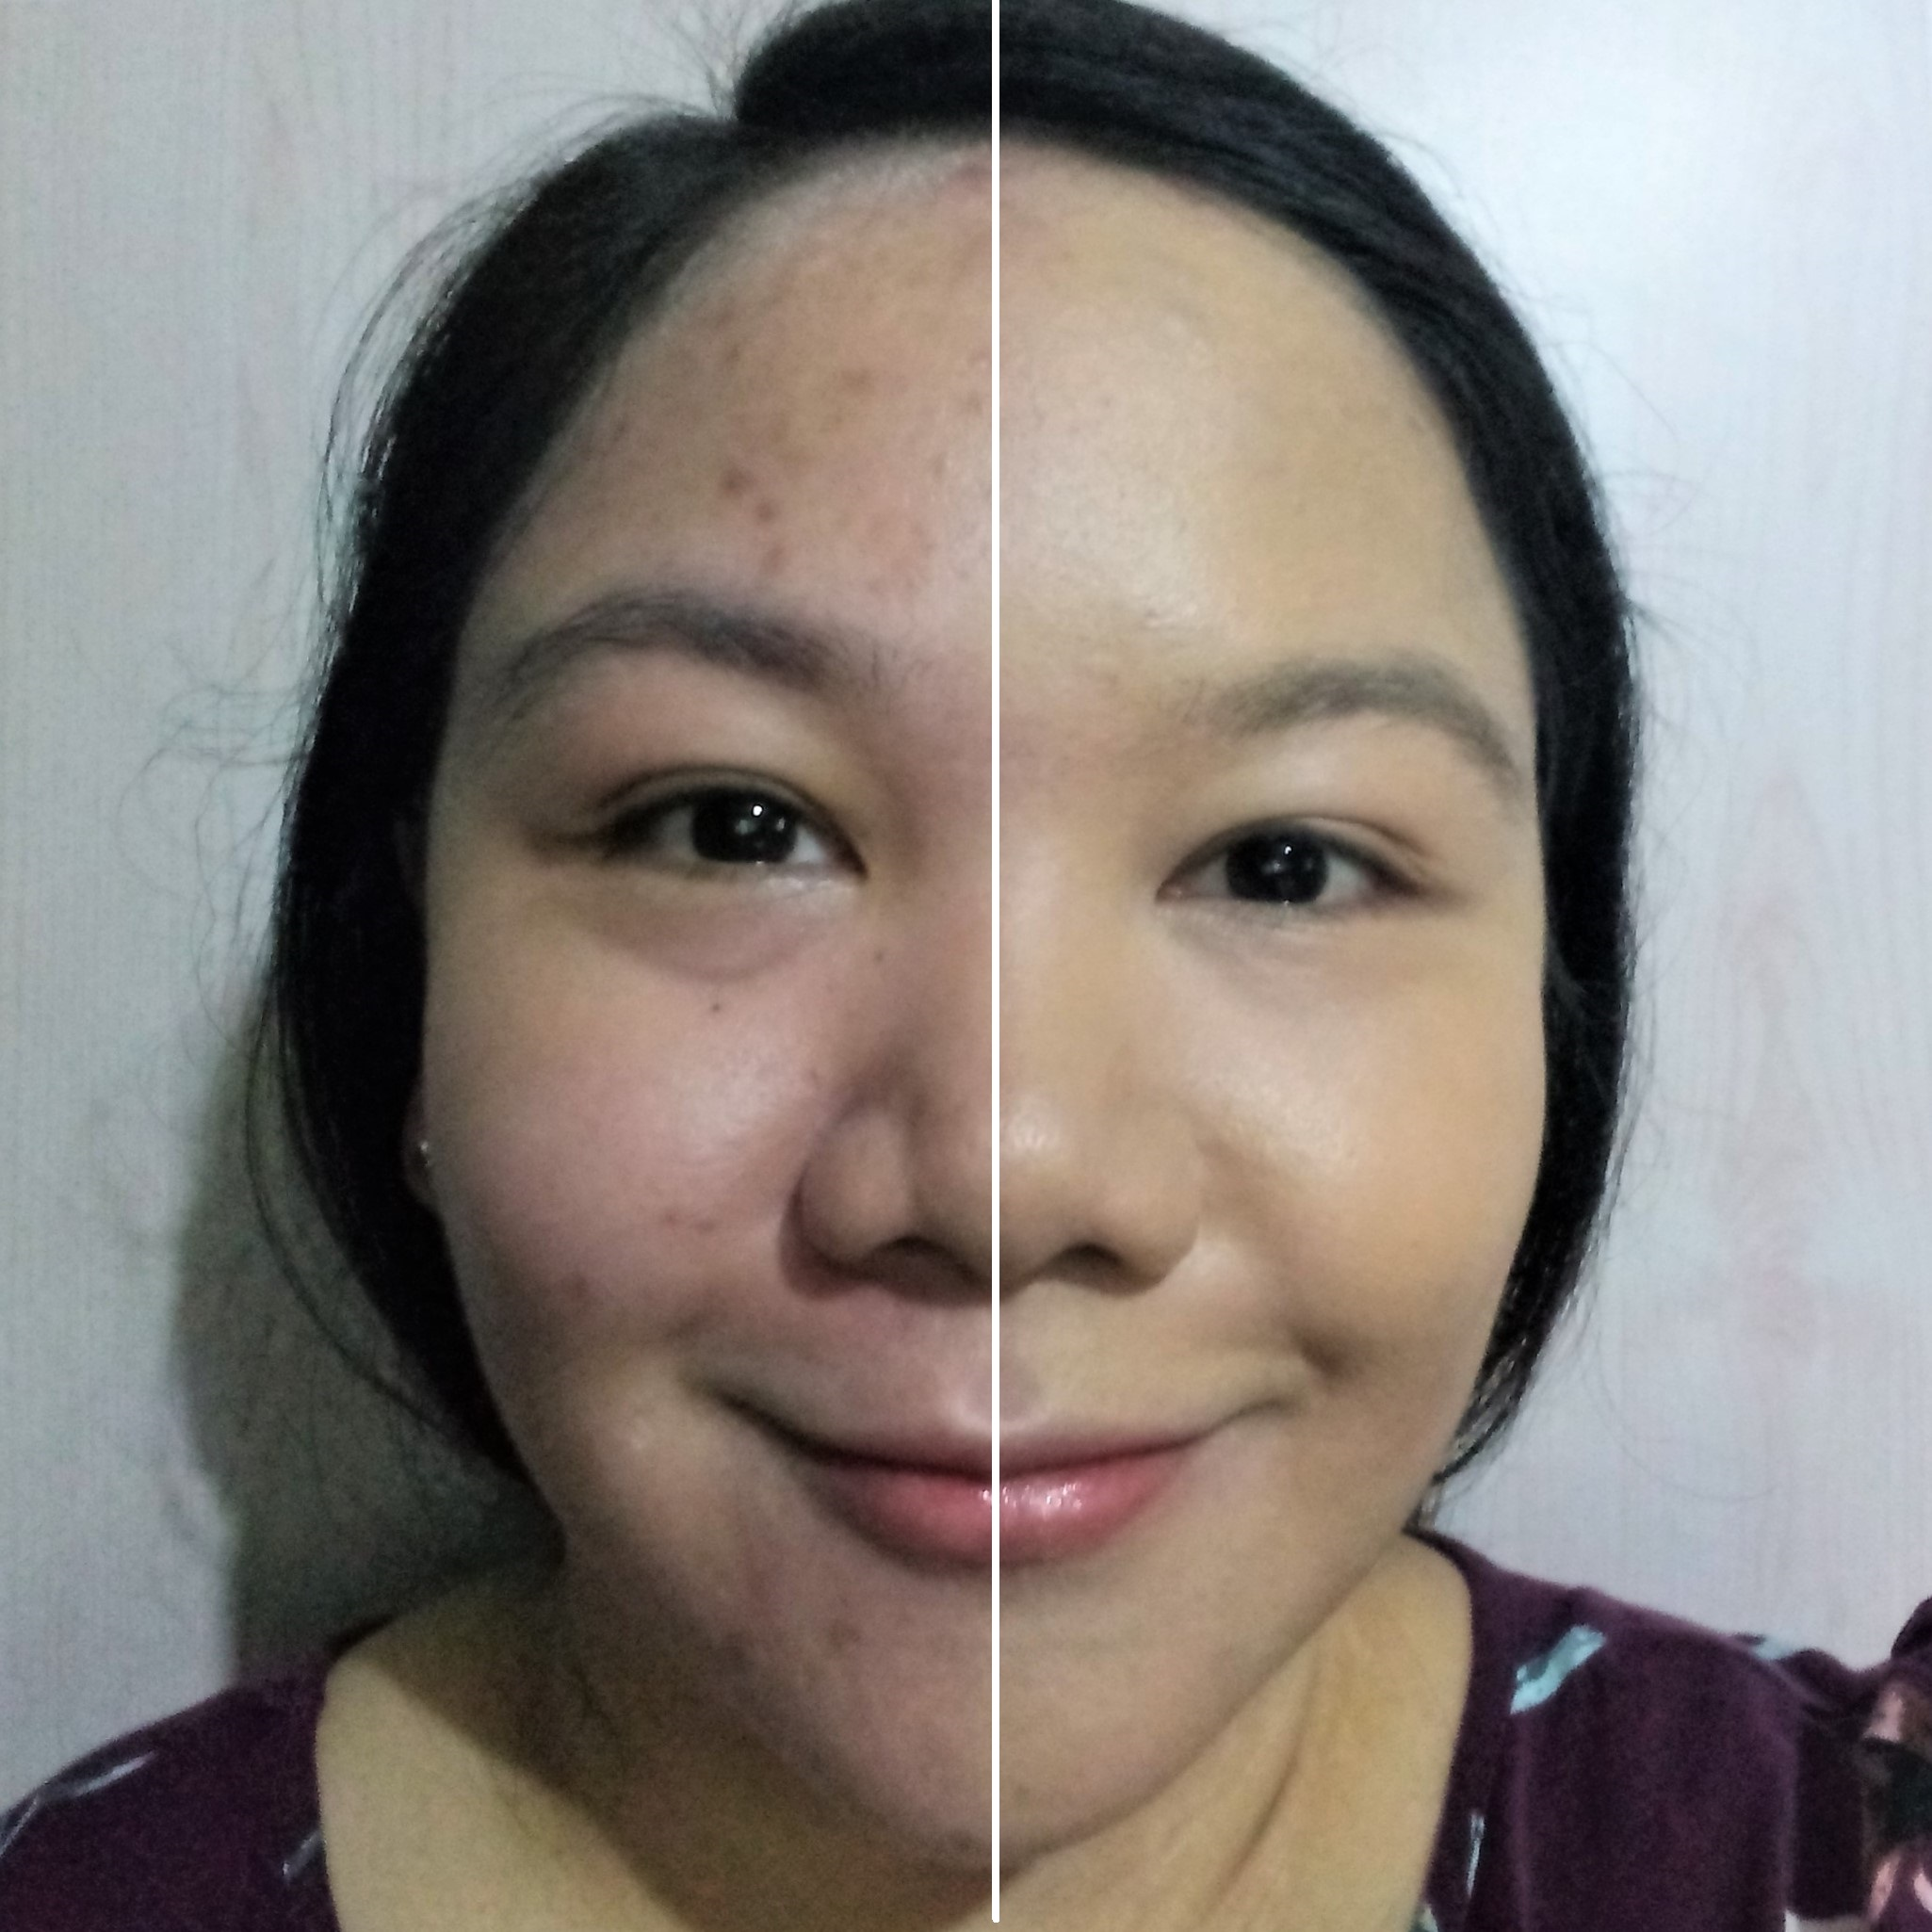 The foundation alone covers up all my blemishes - no concealer needed!